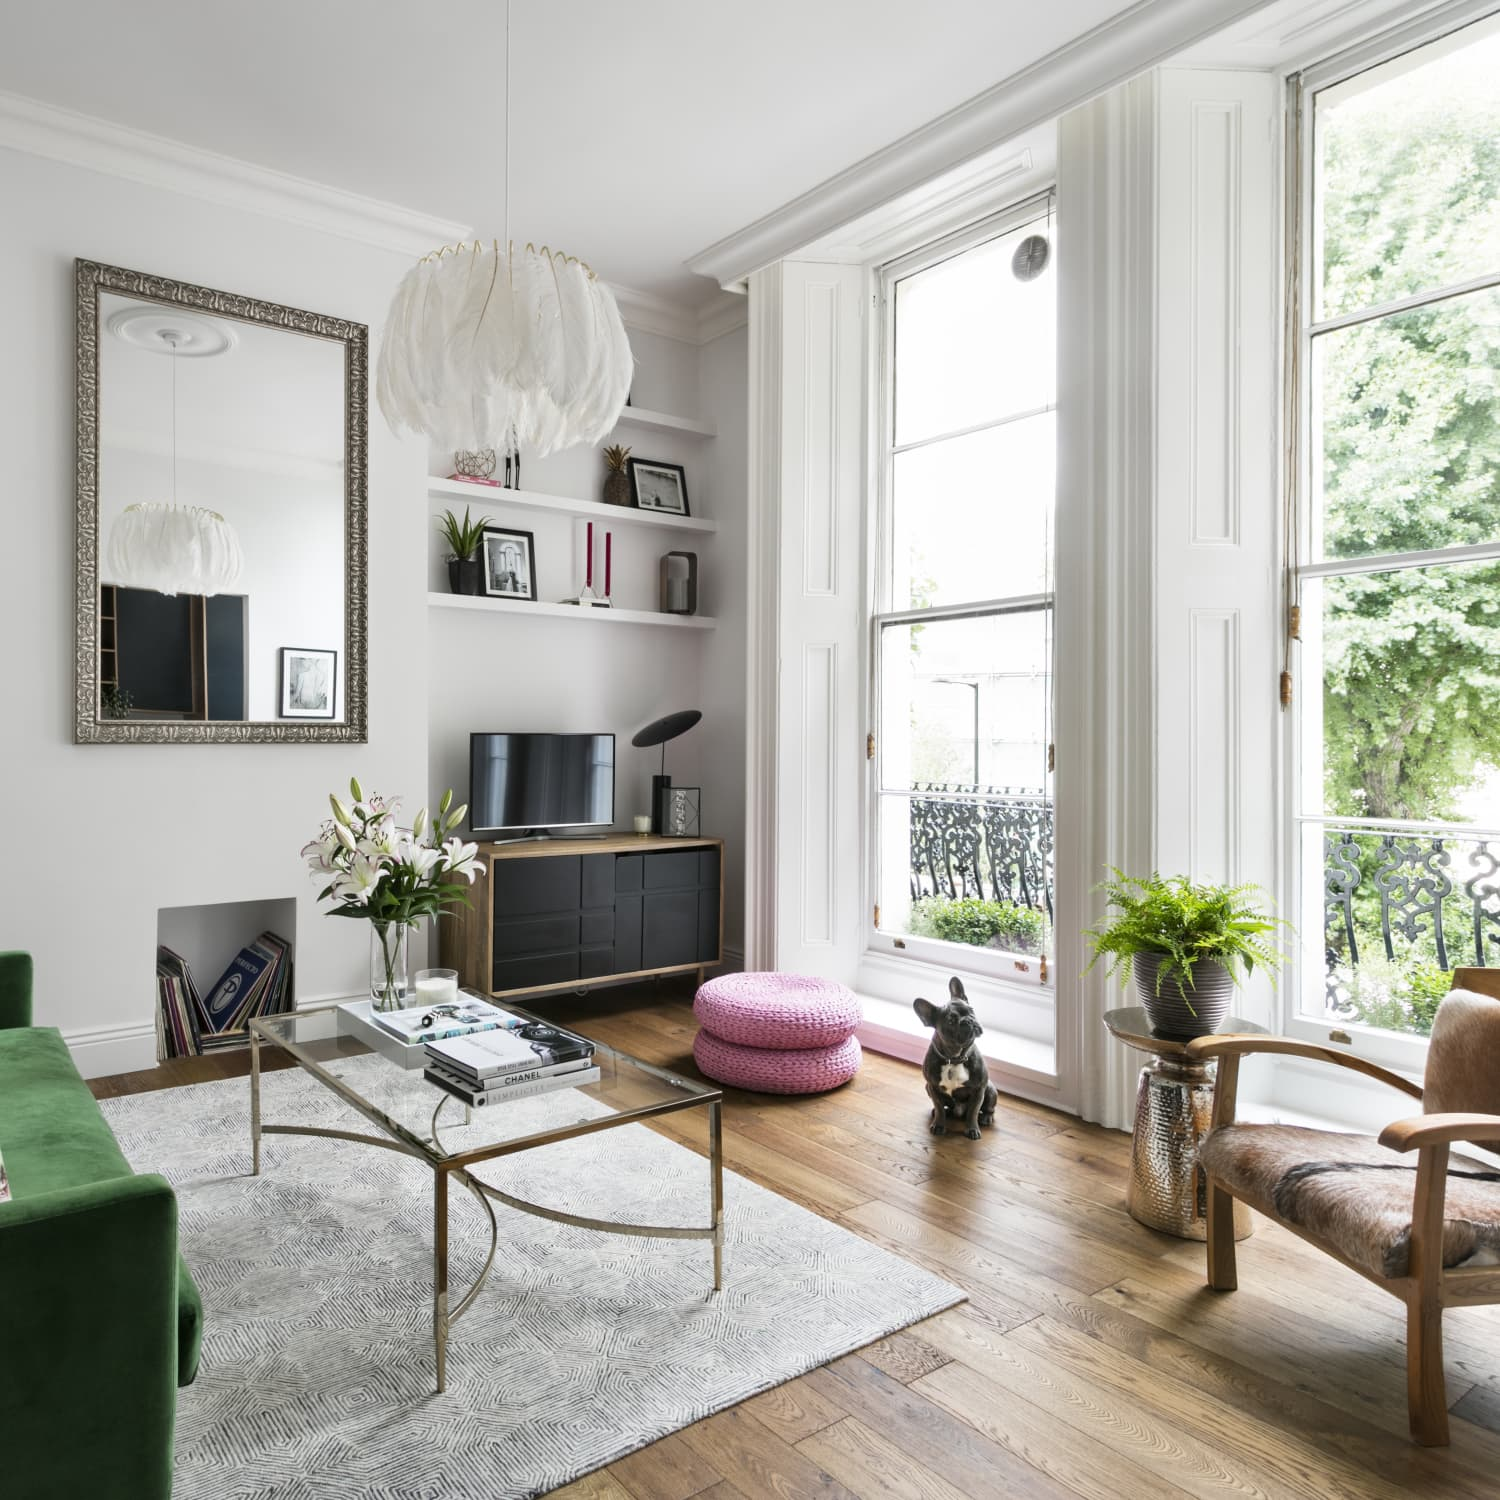 The Couch Trend For 2017 Stylish Emerald Green Sofas Apartment Therapy